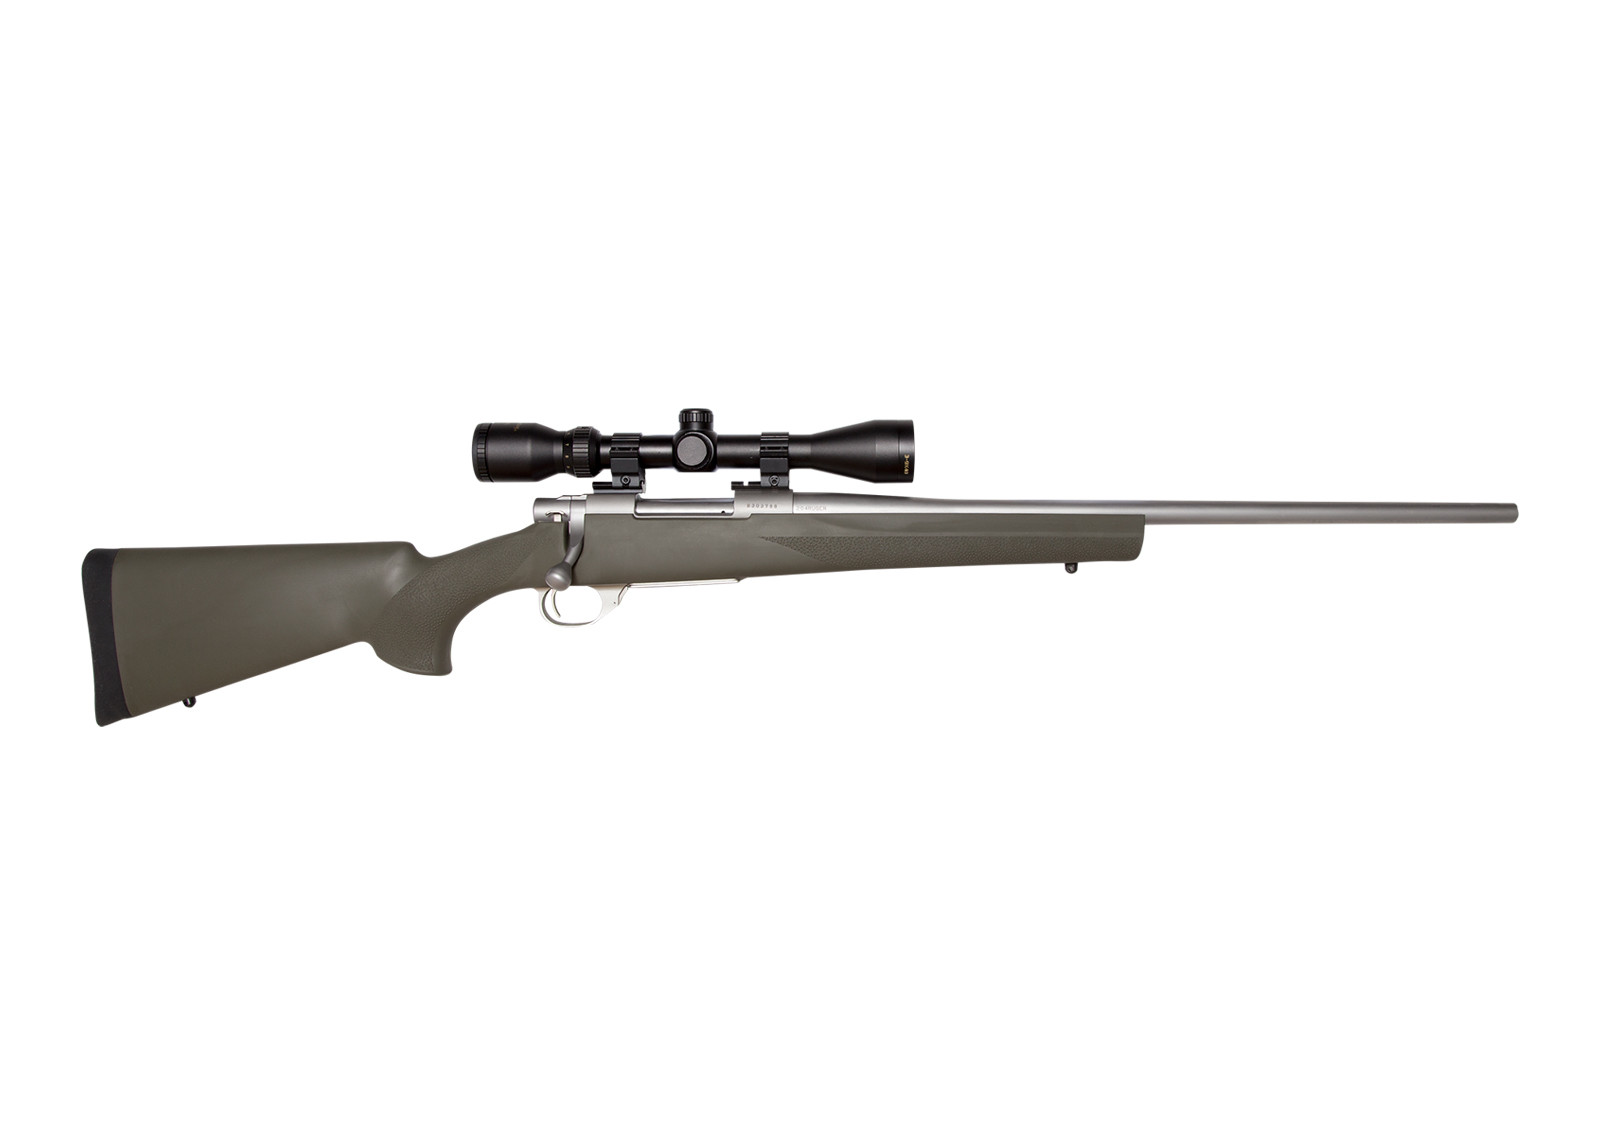 Howa Model 1500 Stainless Green Hogue Rifle with Scope